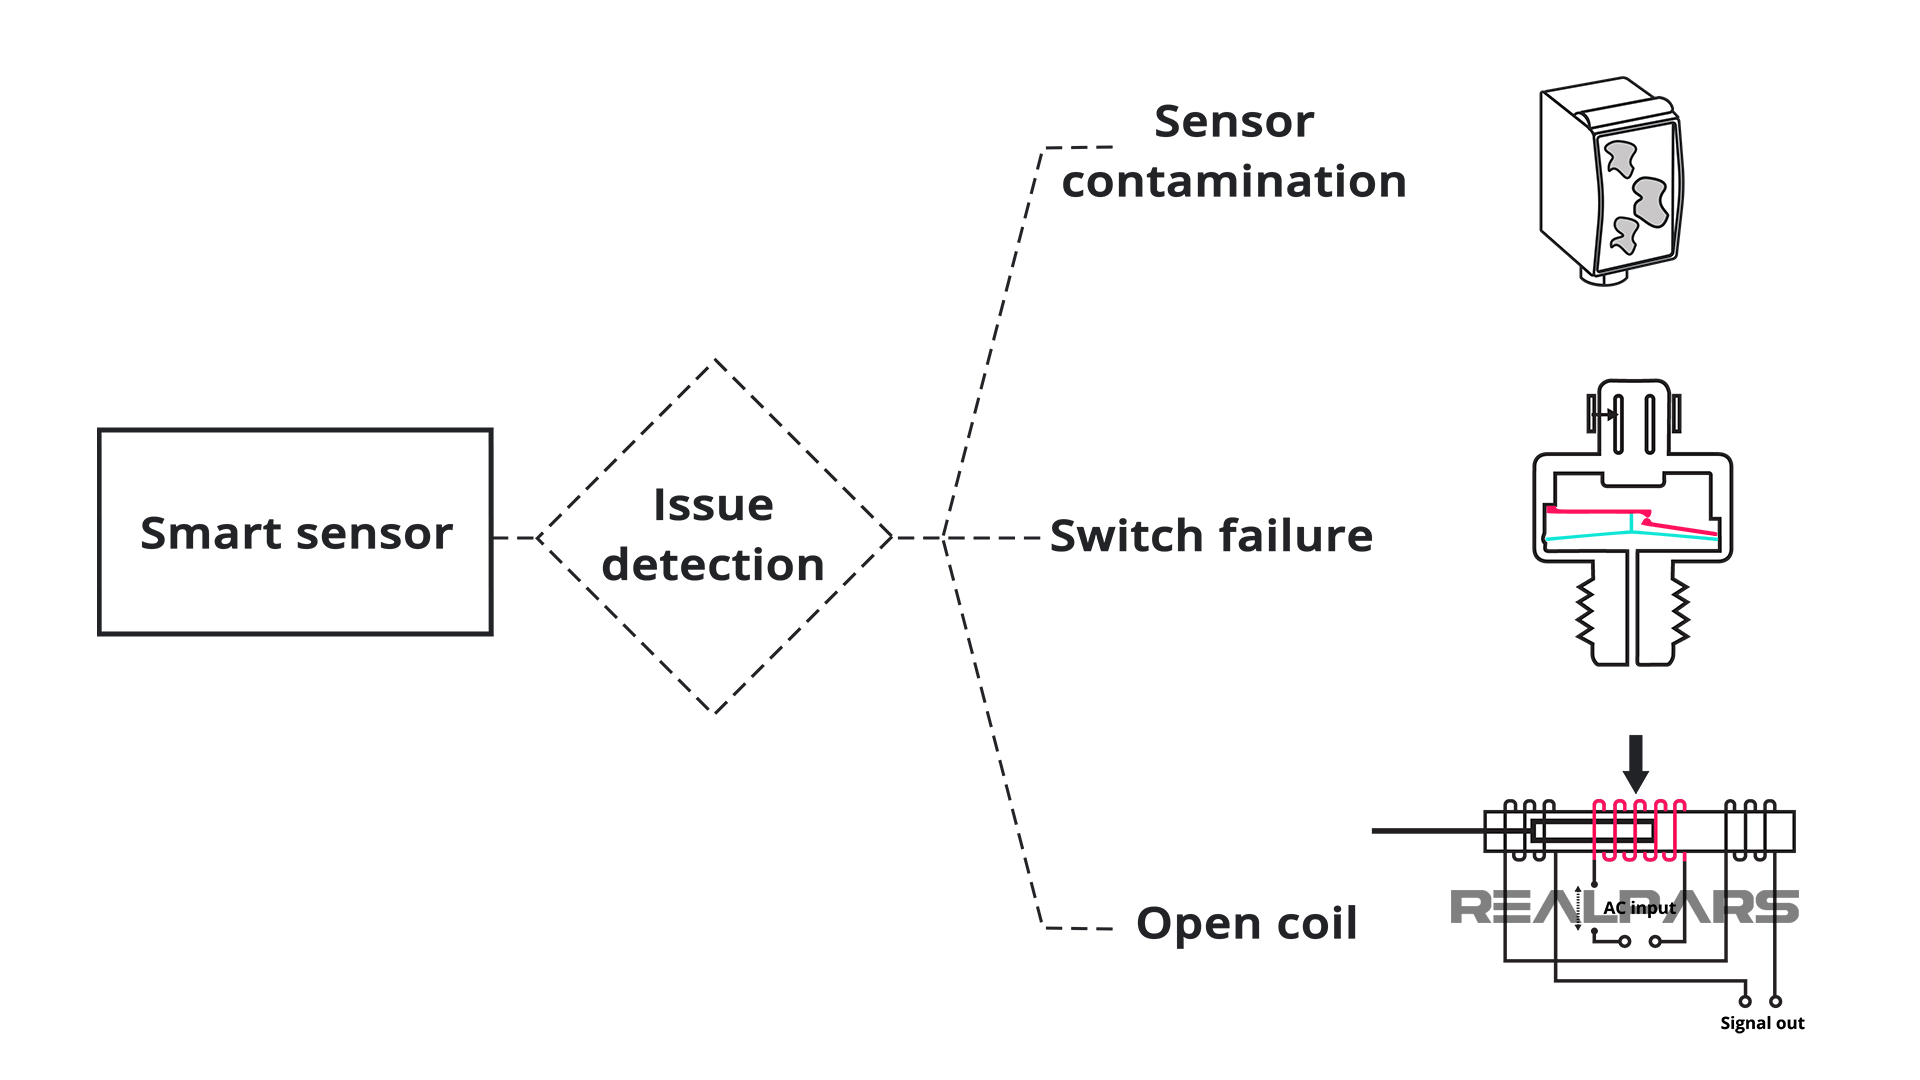 Smart Sensors Issues Detection